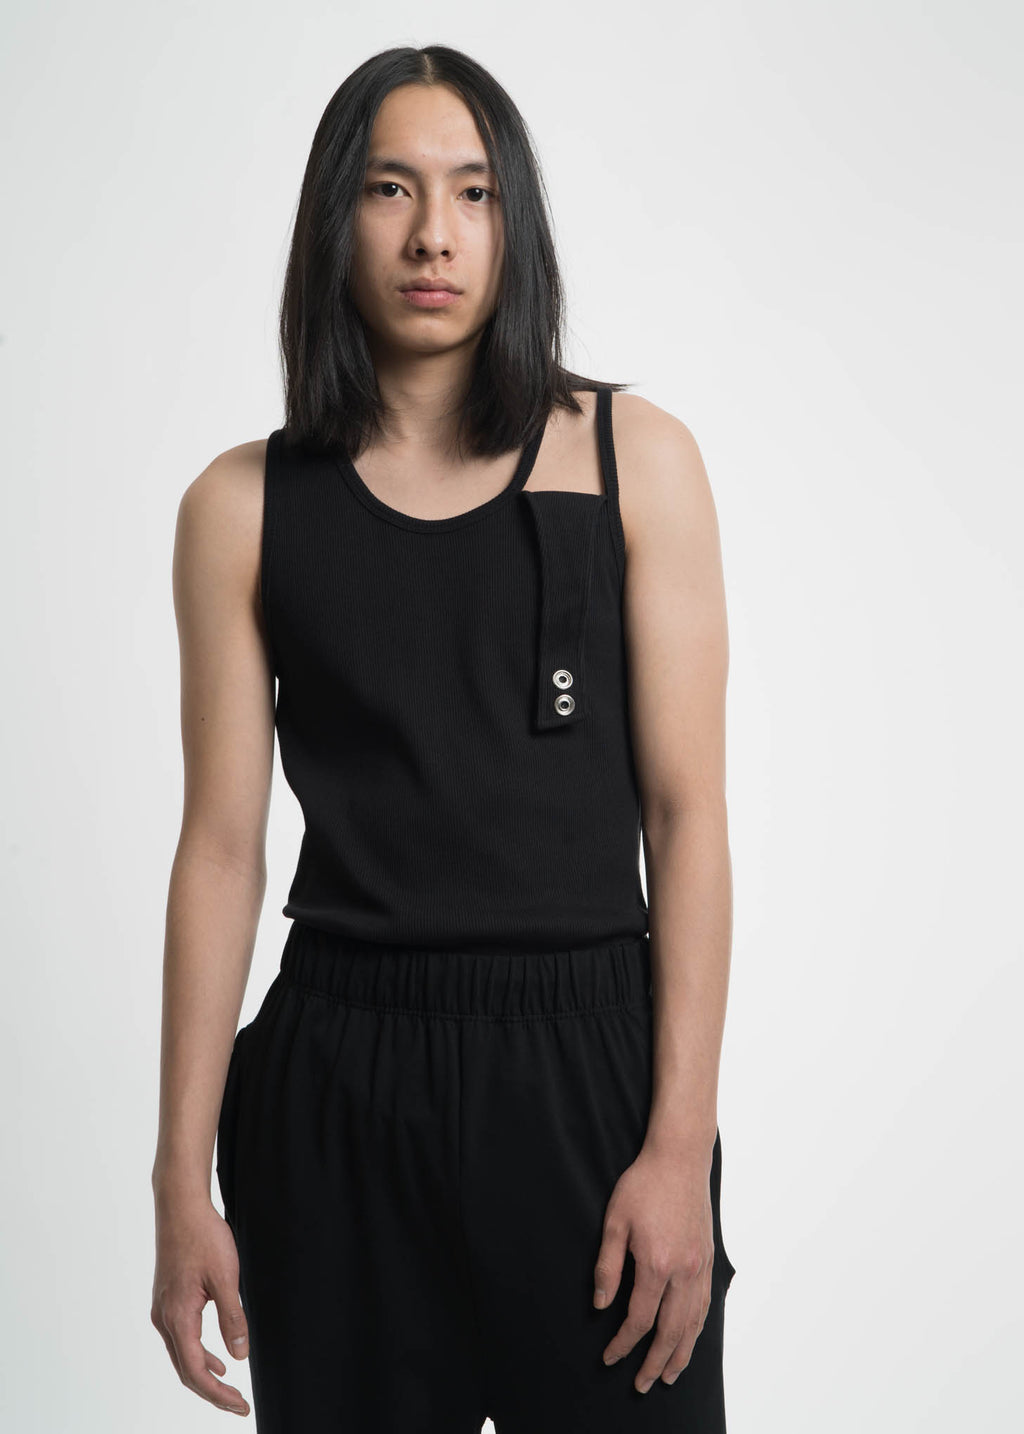 a0fd5500dc339 Black Reveal Tank Top